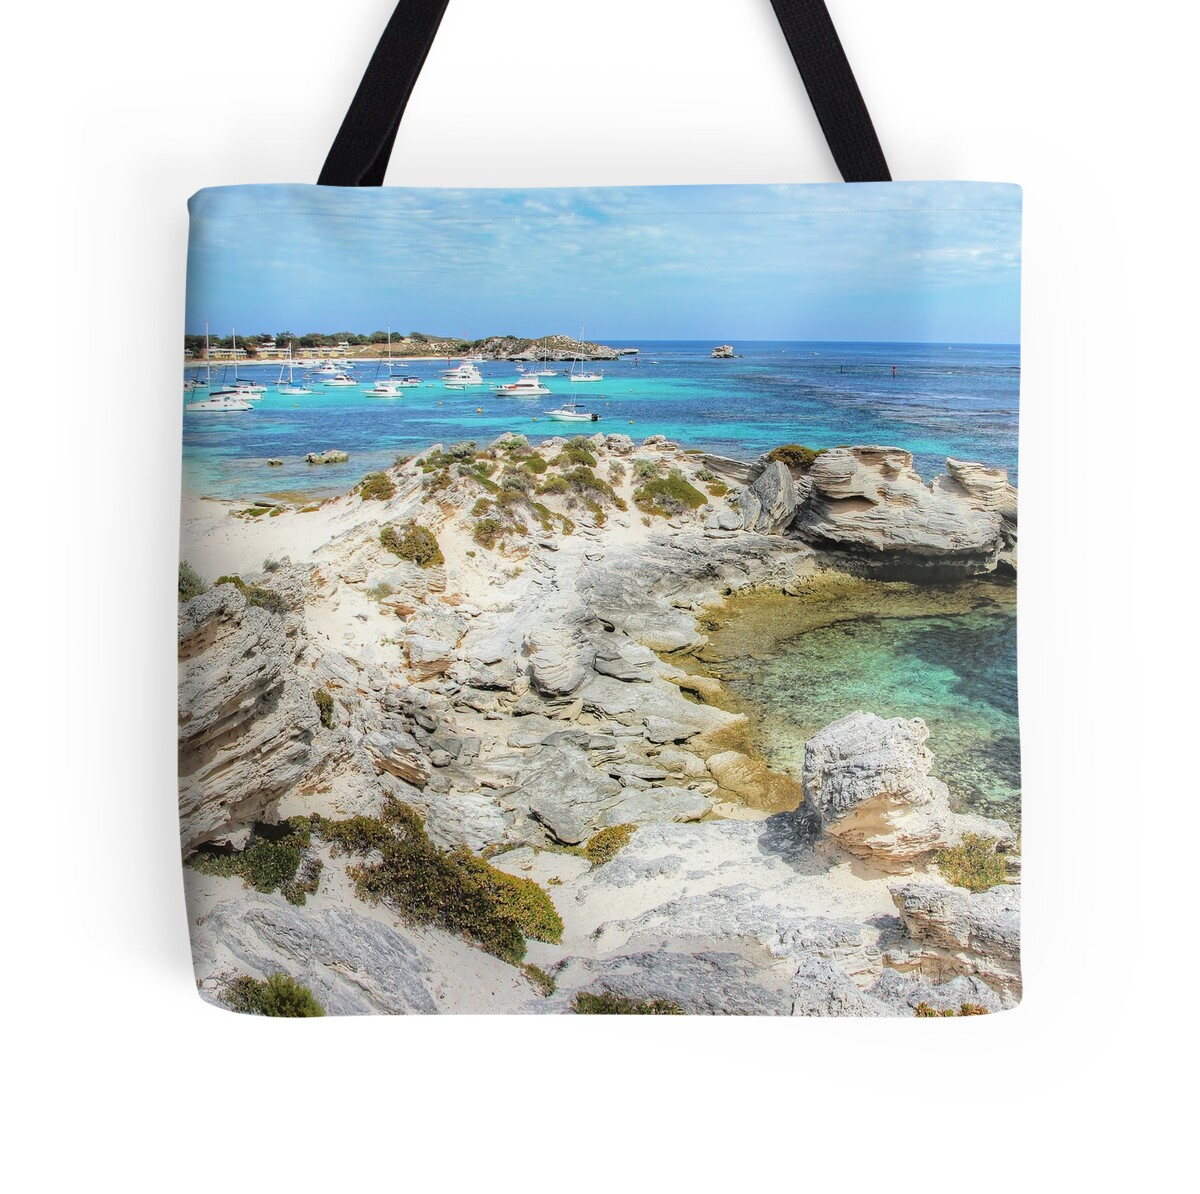 Wall Stickers Perth Quot Longreach Bay Rottnest Island Perth Wa Quot Tote Bags By